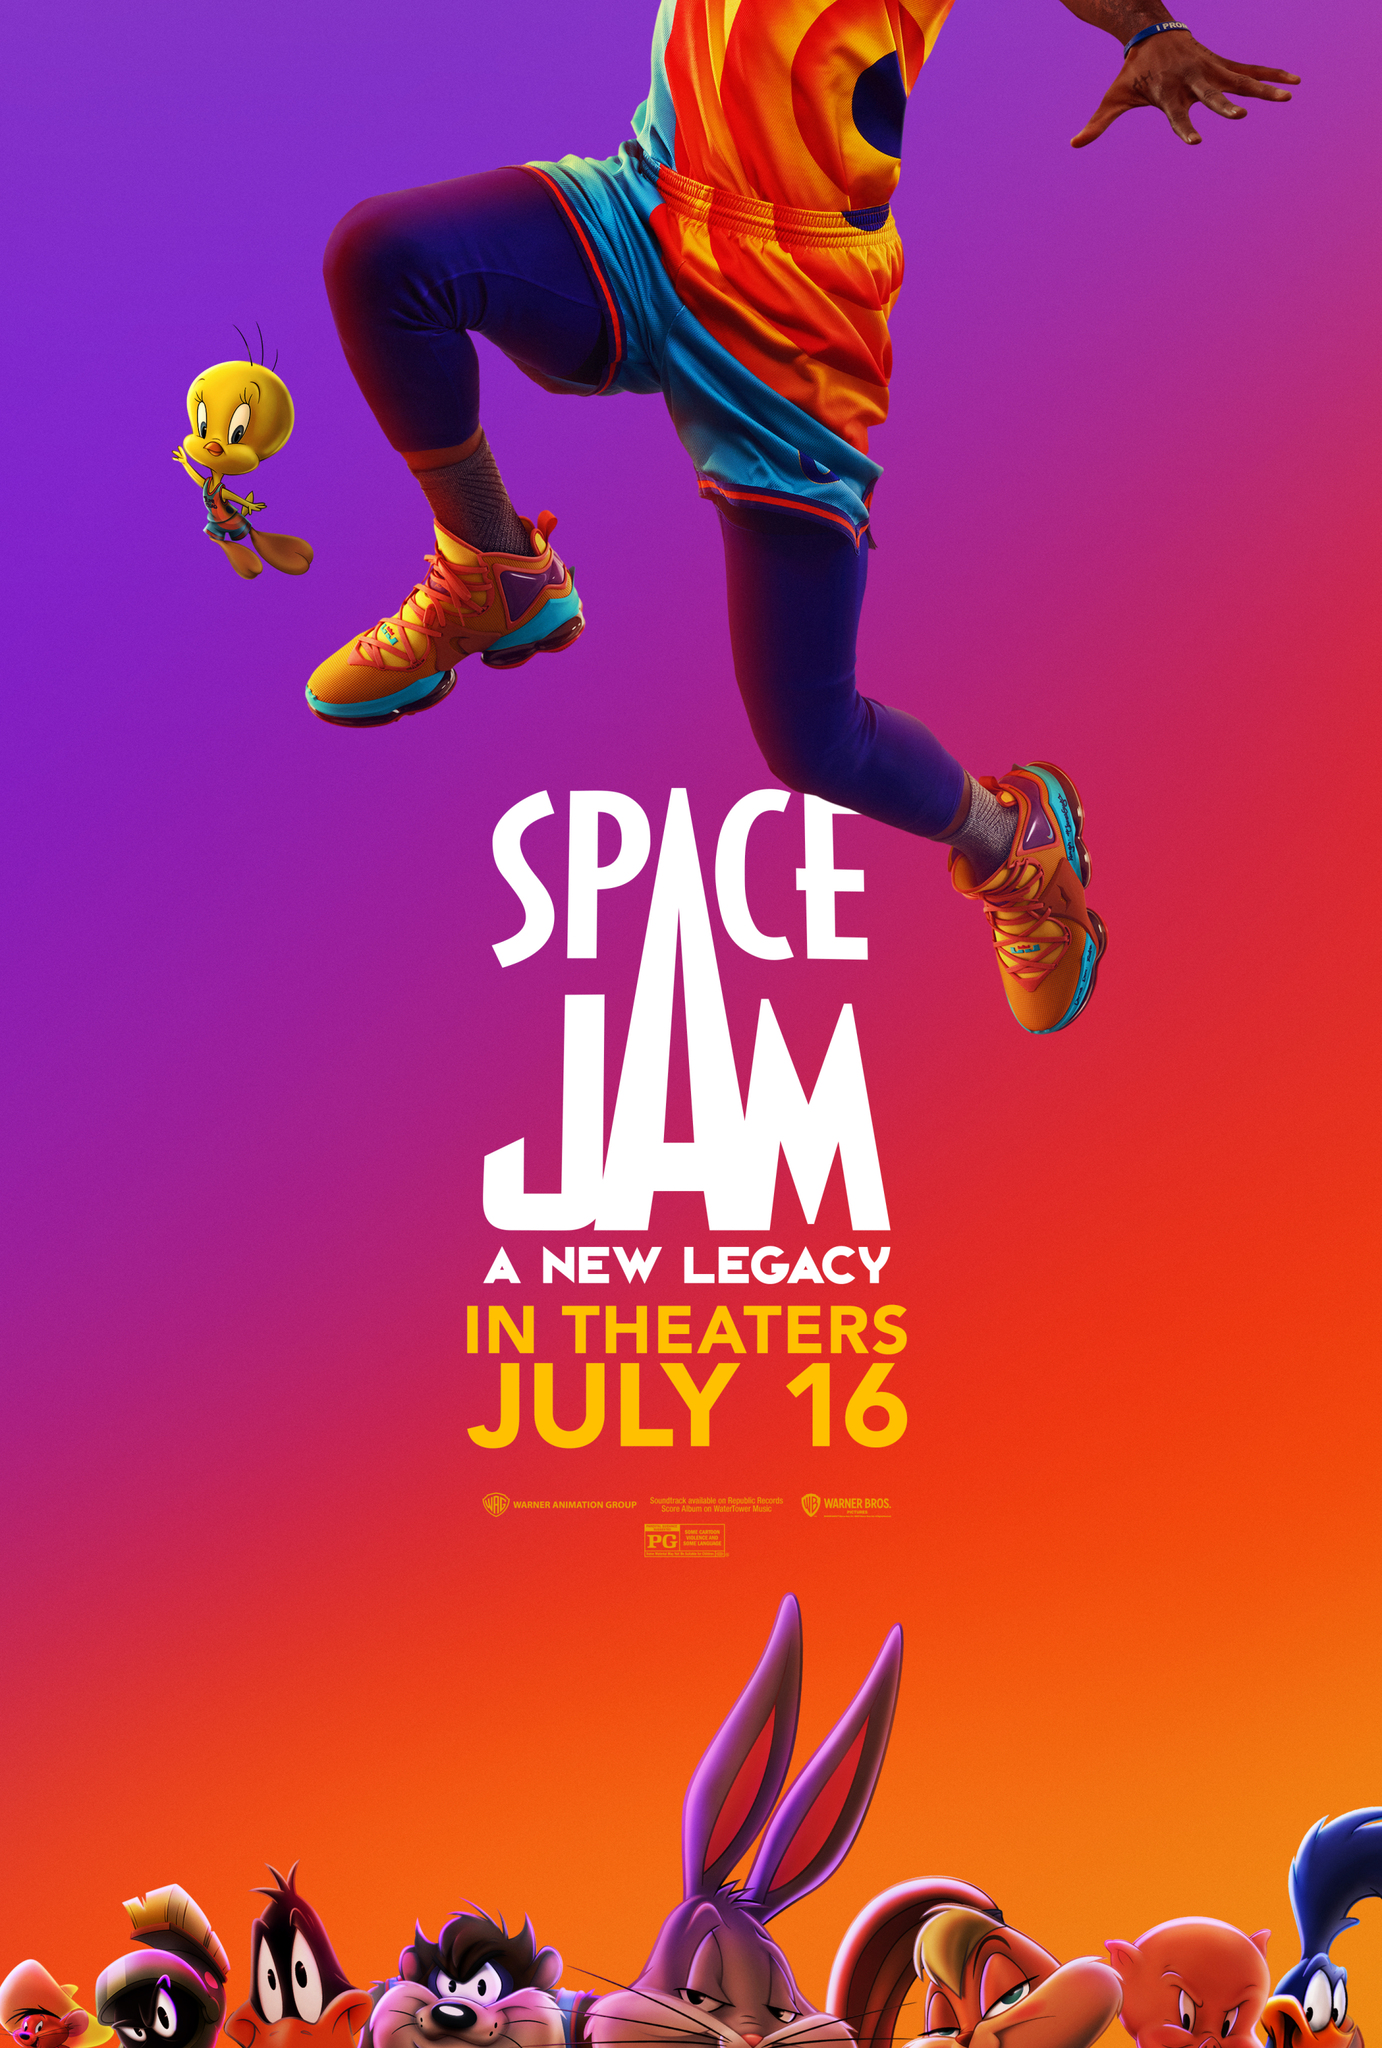 Movie poster image for SPACE JAM: A NEW LEGACY